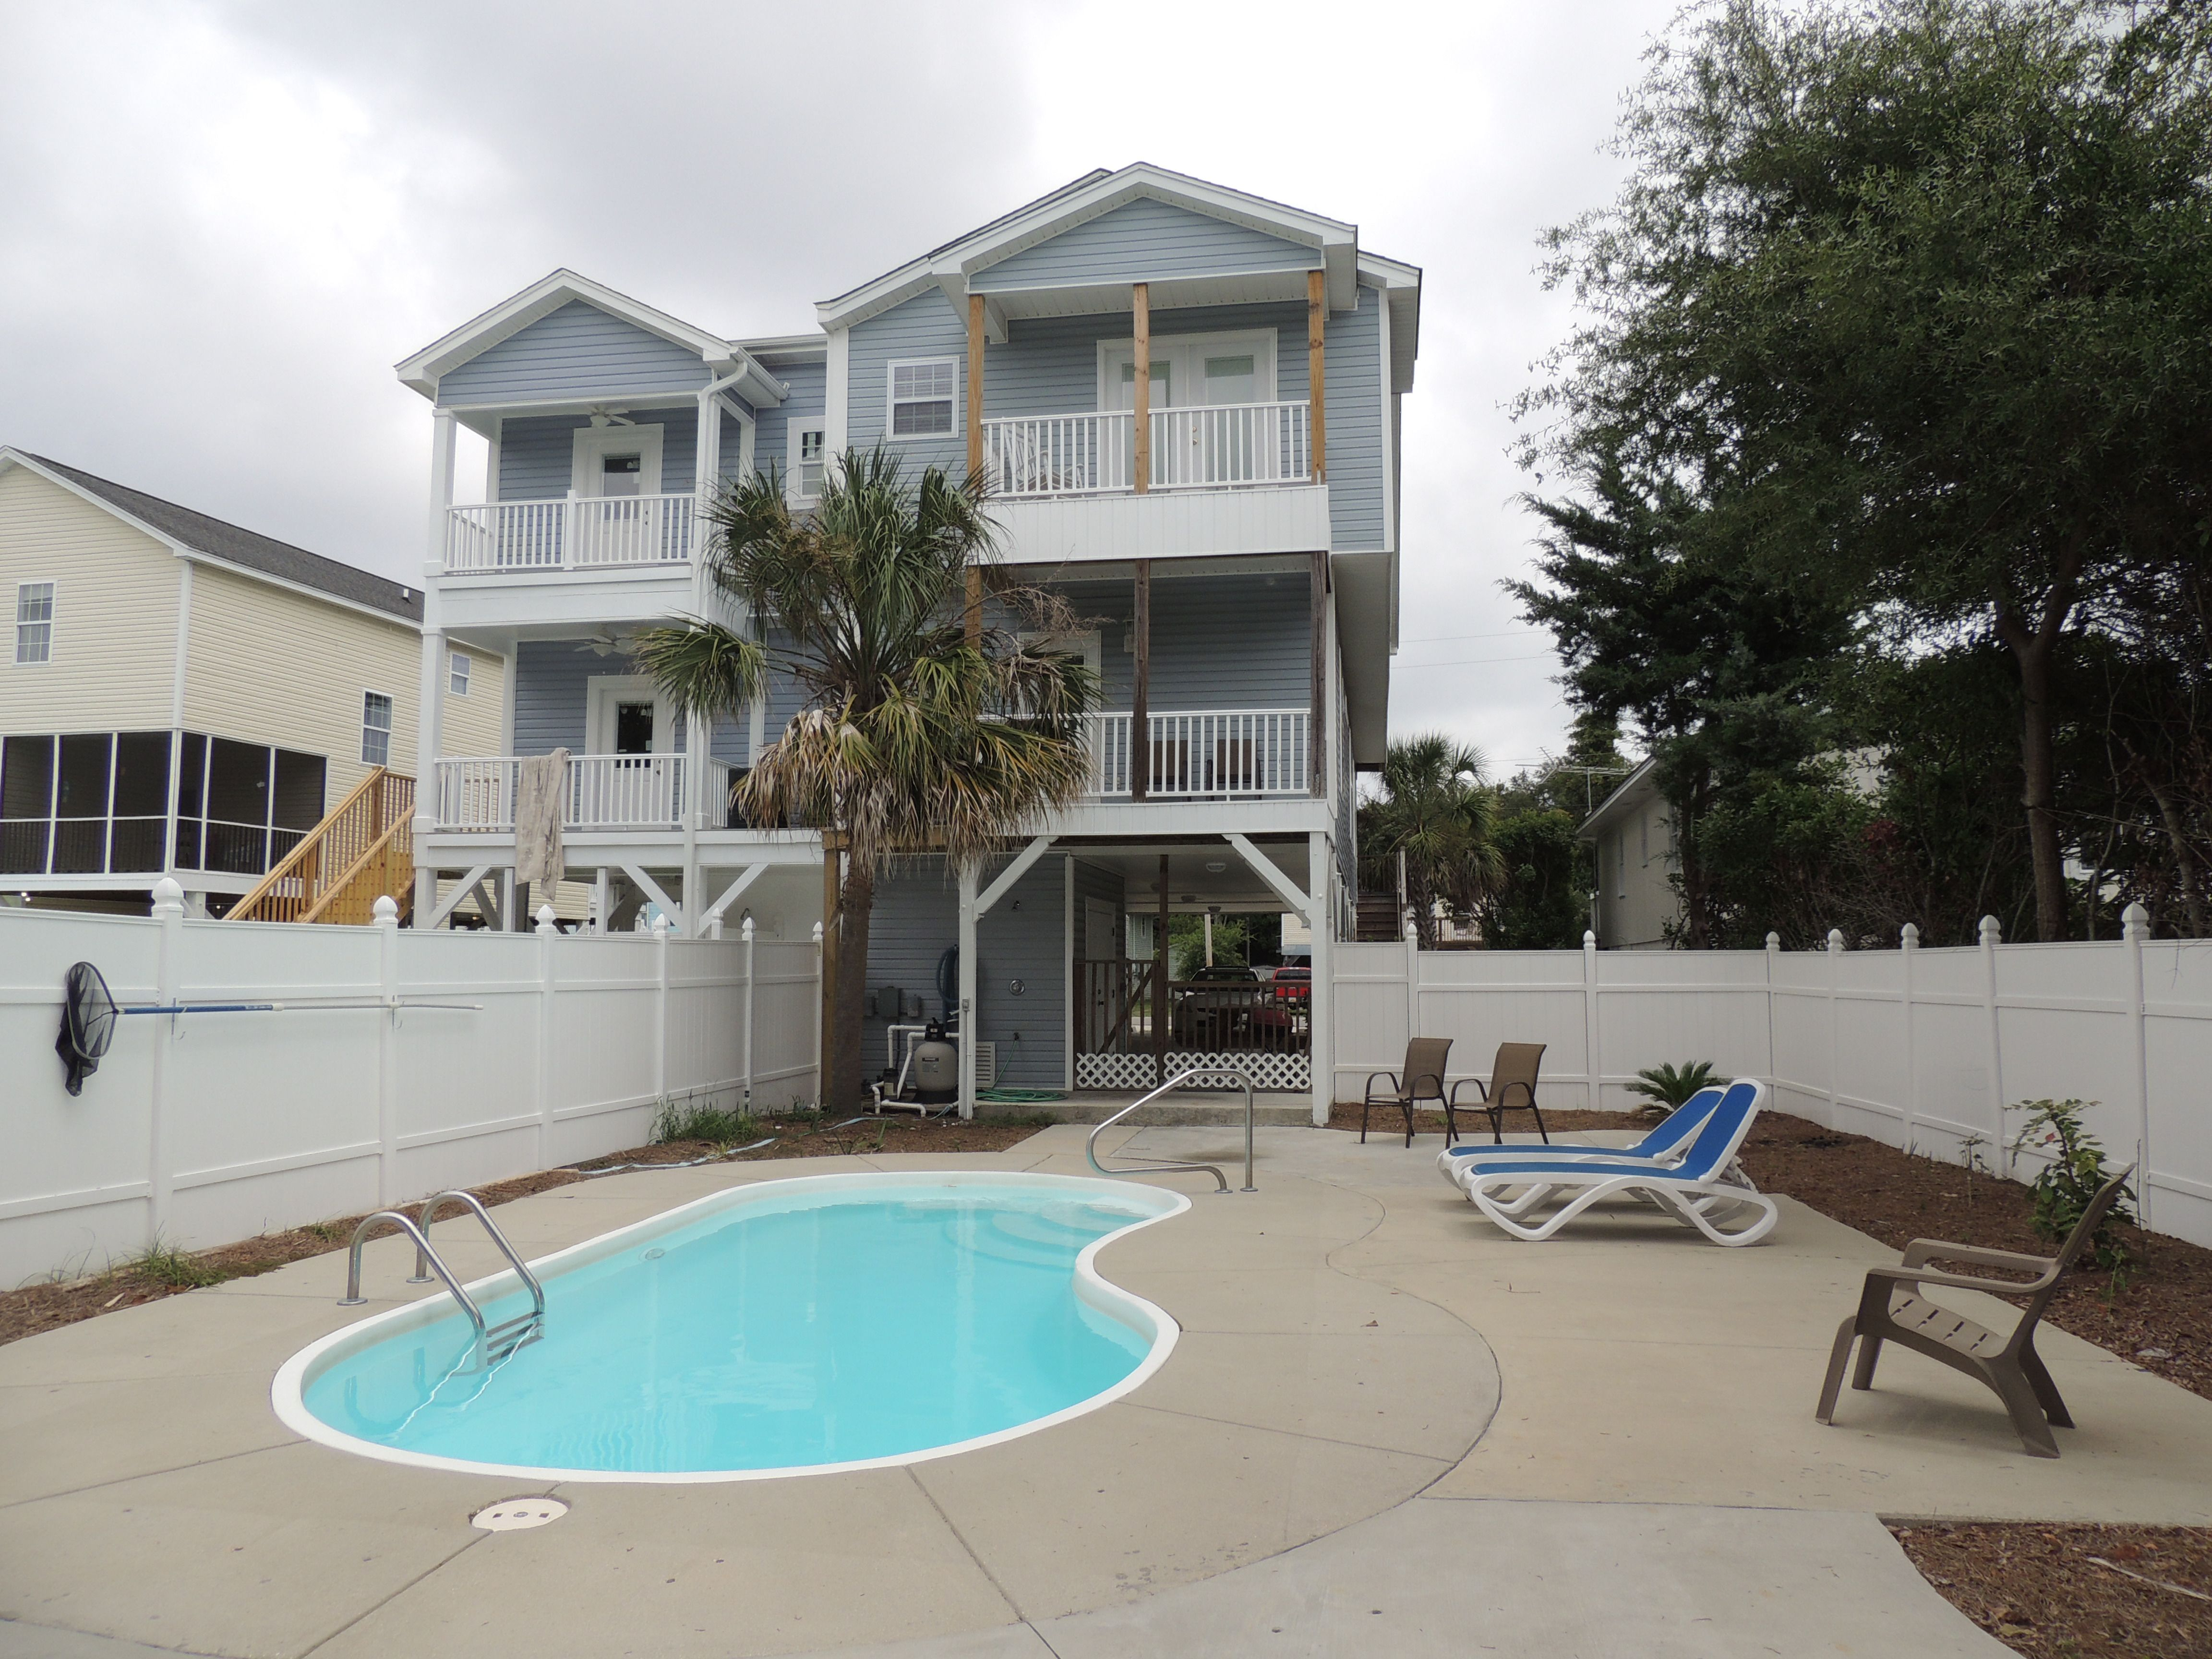 Sandy Paws Is A Five Bedroom Five Bath Beach House Located 1 Mile